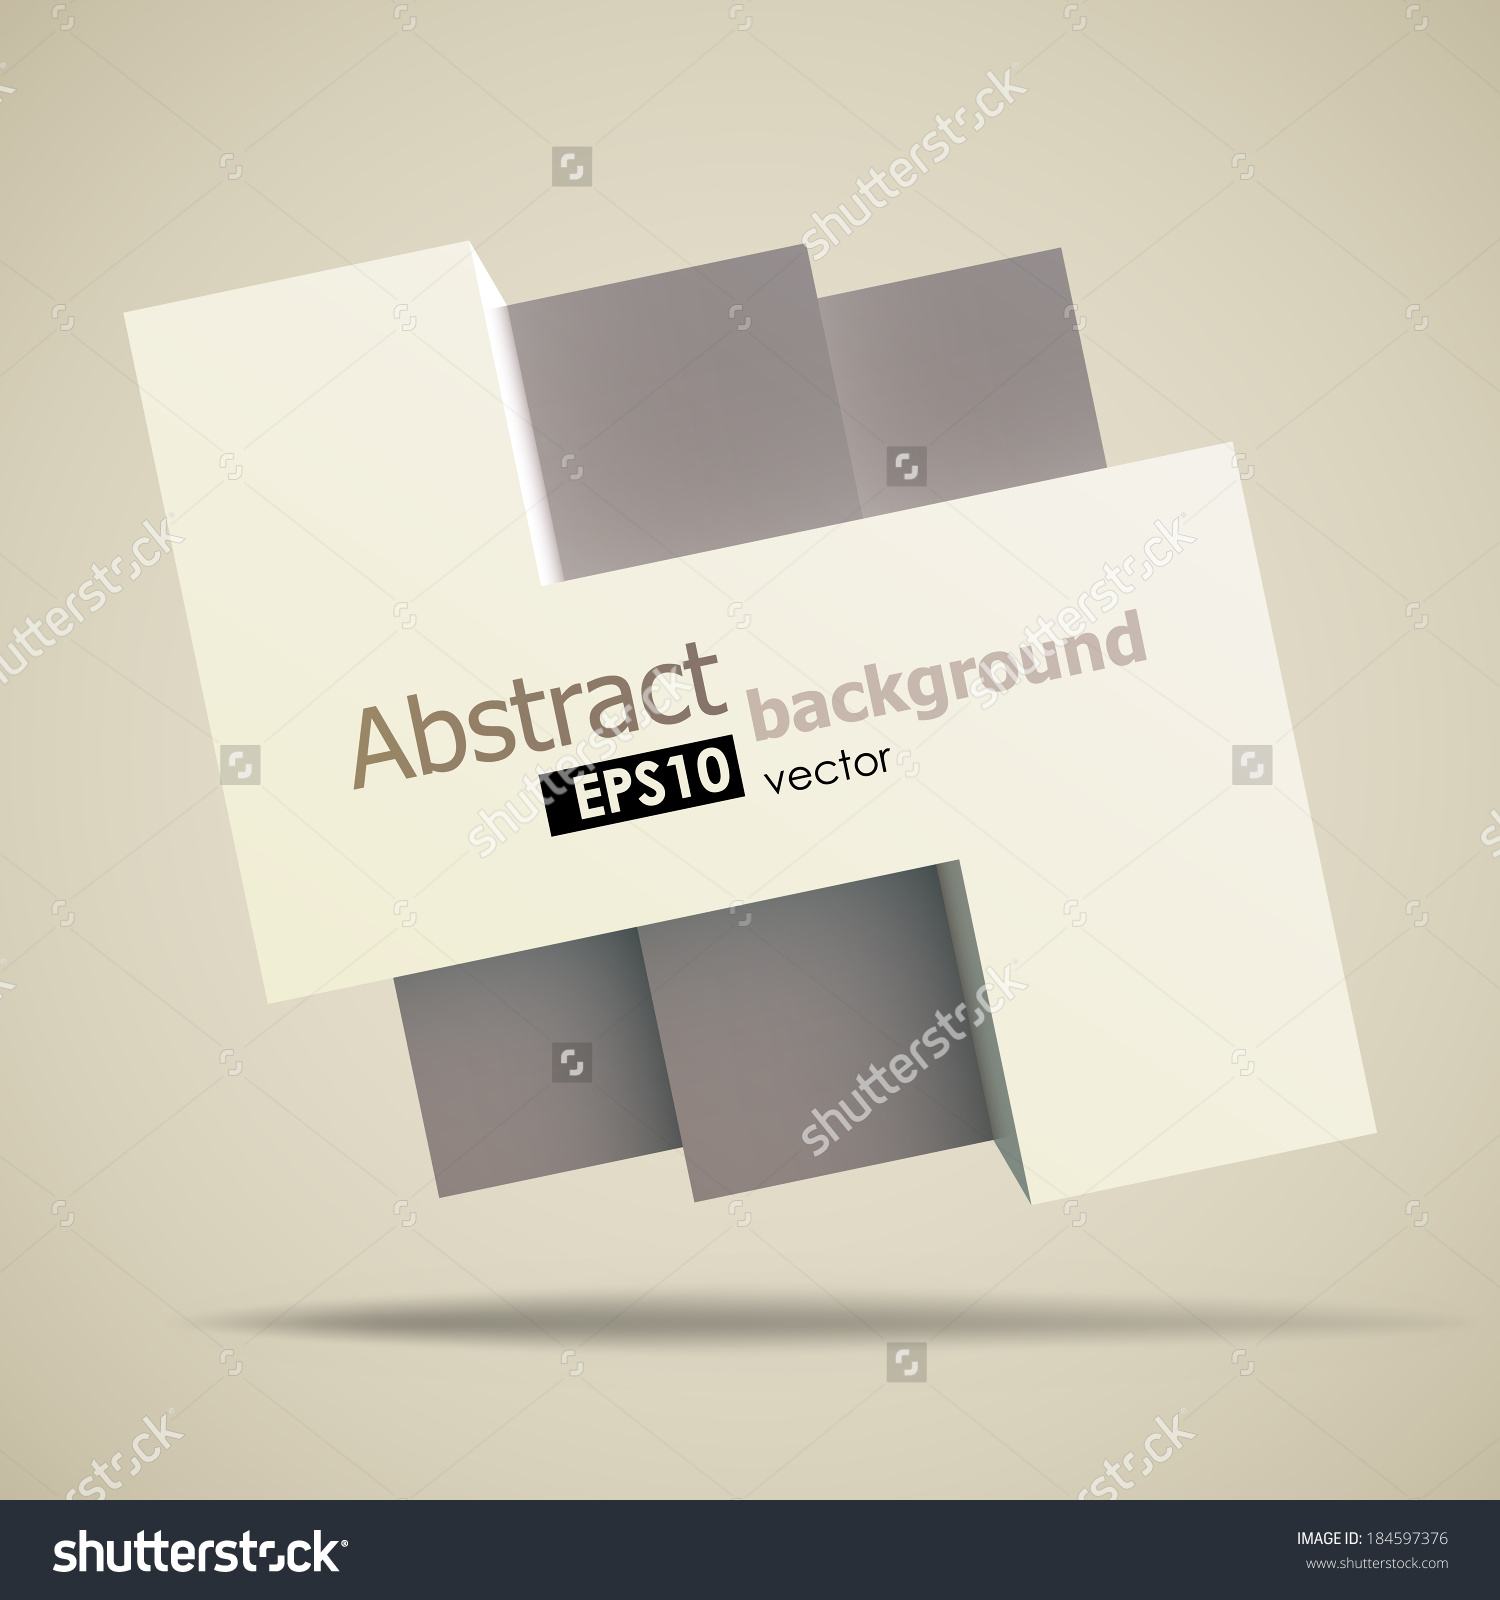 1500x1600 Stock Vector Cool Geometric Shapes Background With A Placeholder